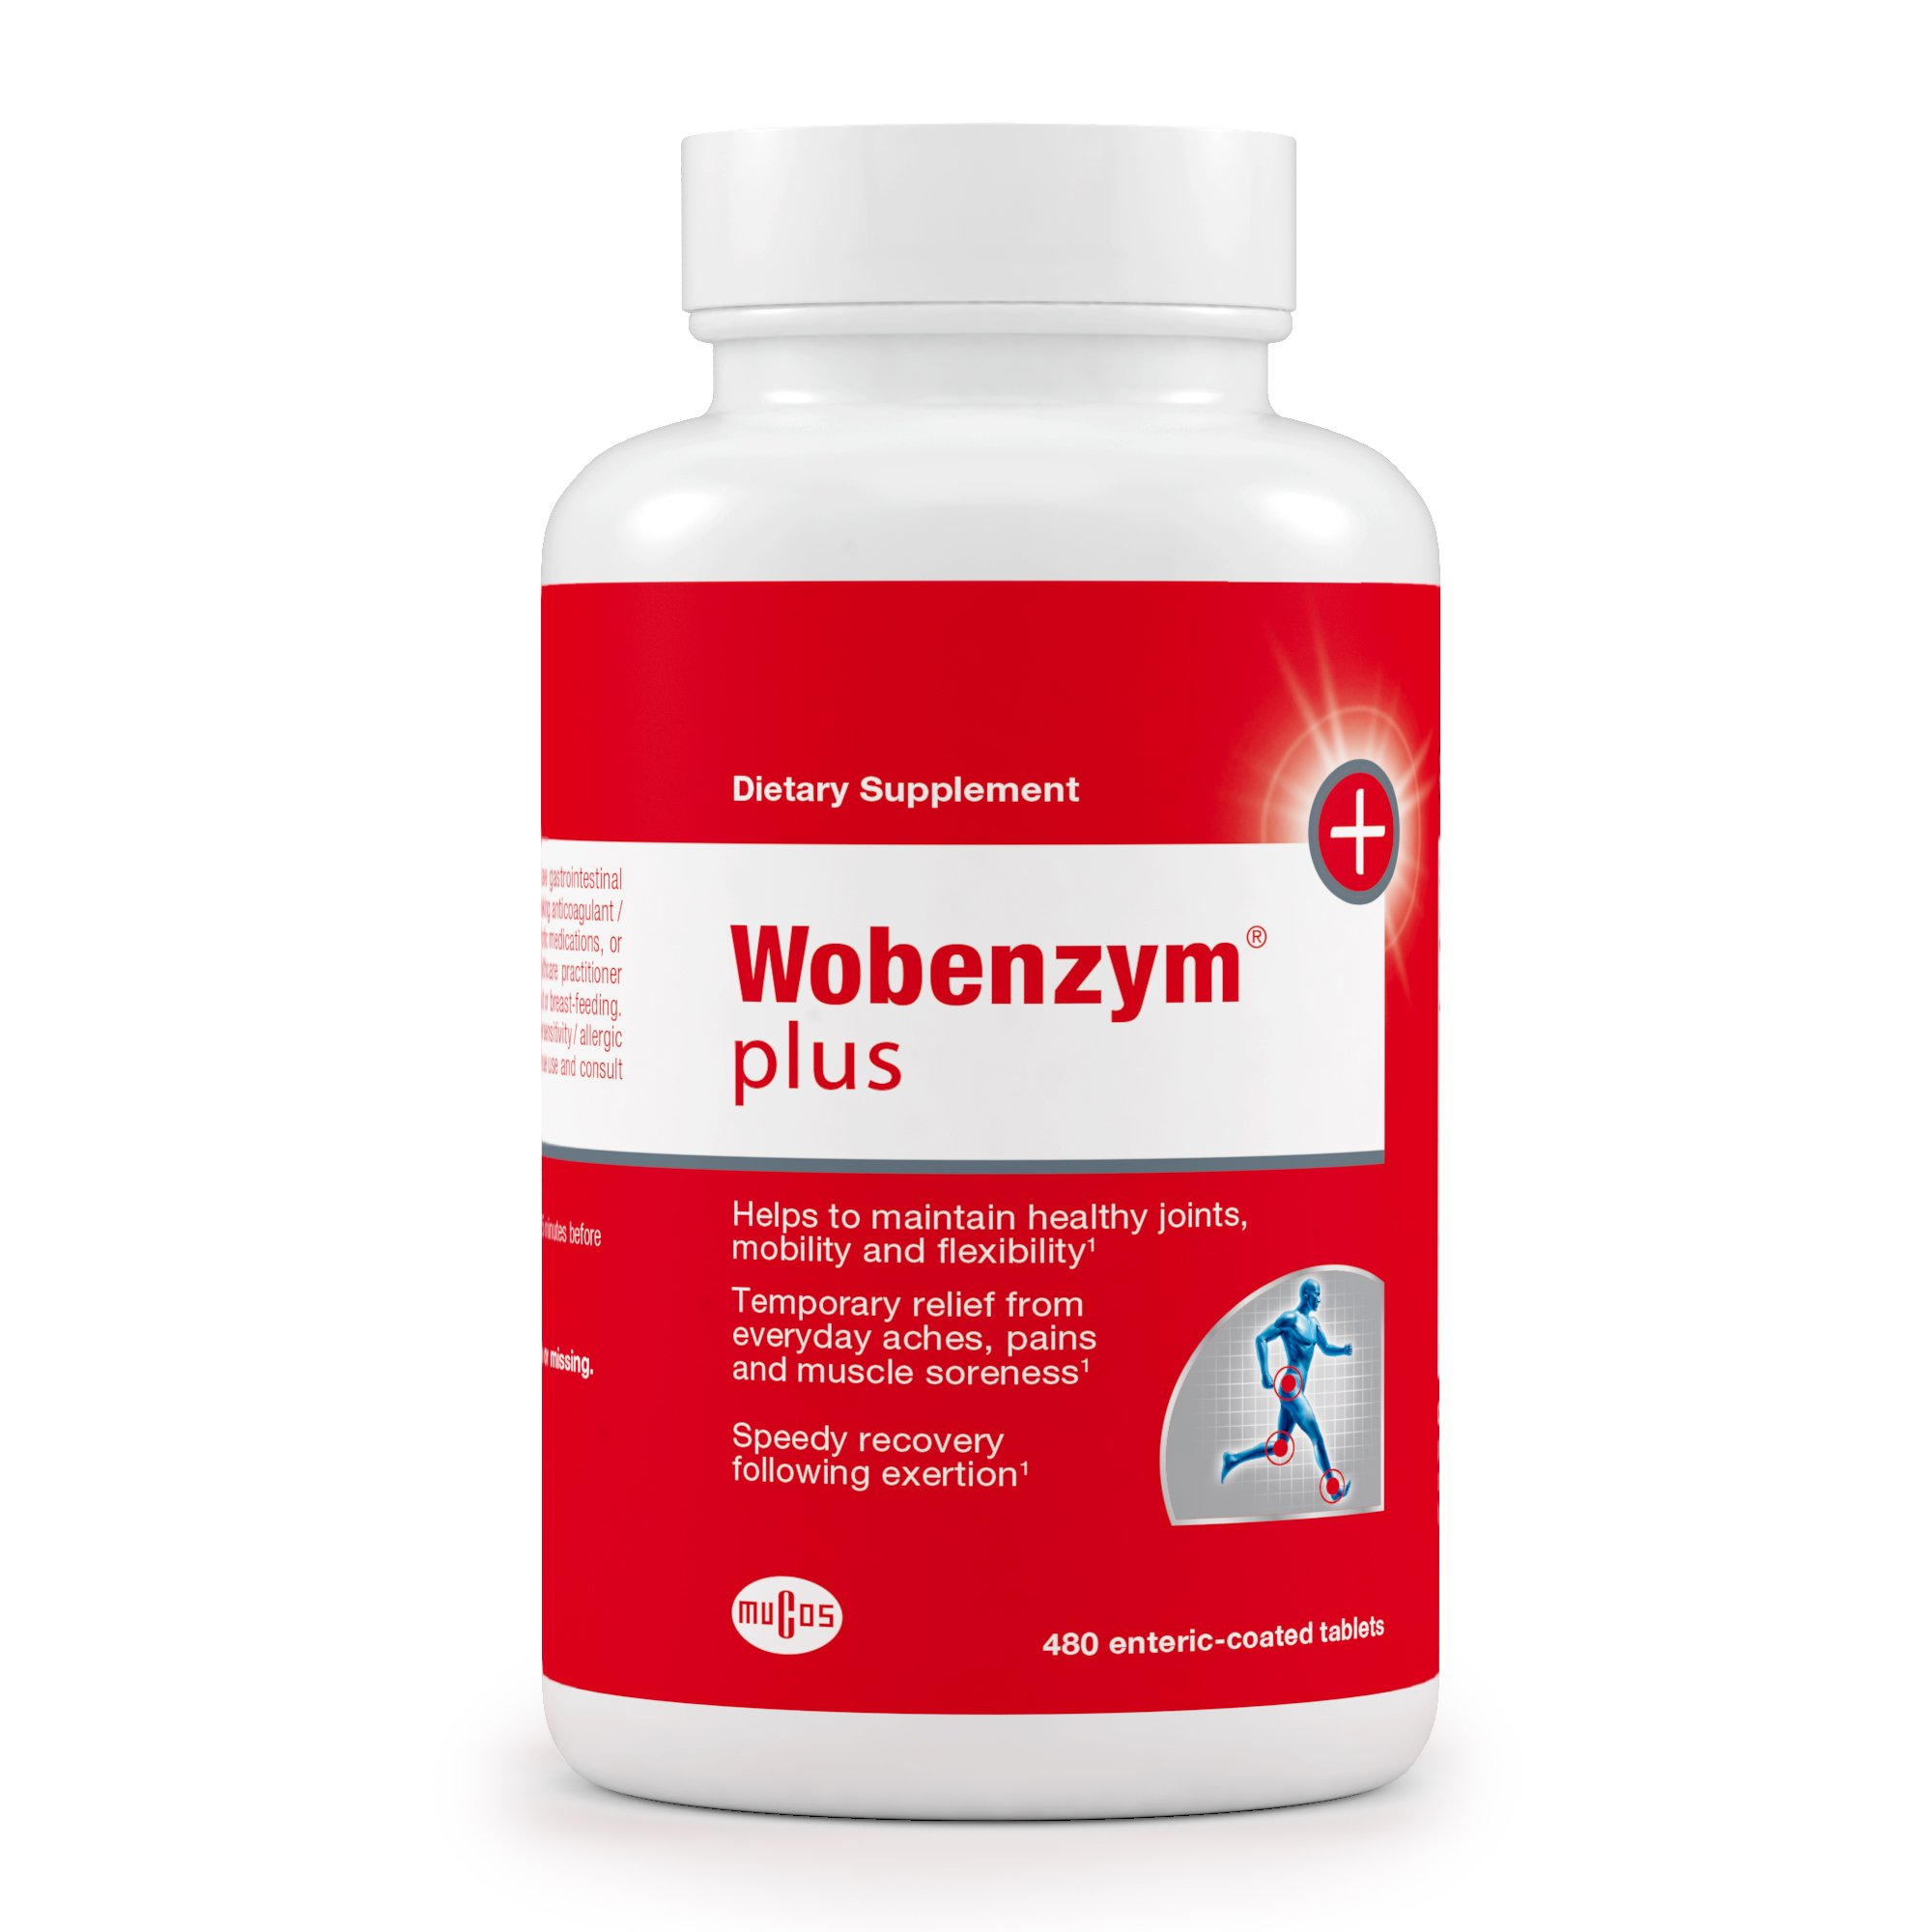 Wobenzym - Wobenzym Plus - Number One Joint Health Pill in Germany†*, Supports Joint Function, Muscles and Recovery after Exertion† - 480 Enteric-Coated Tablets